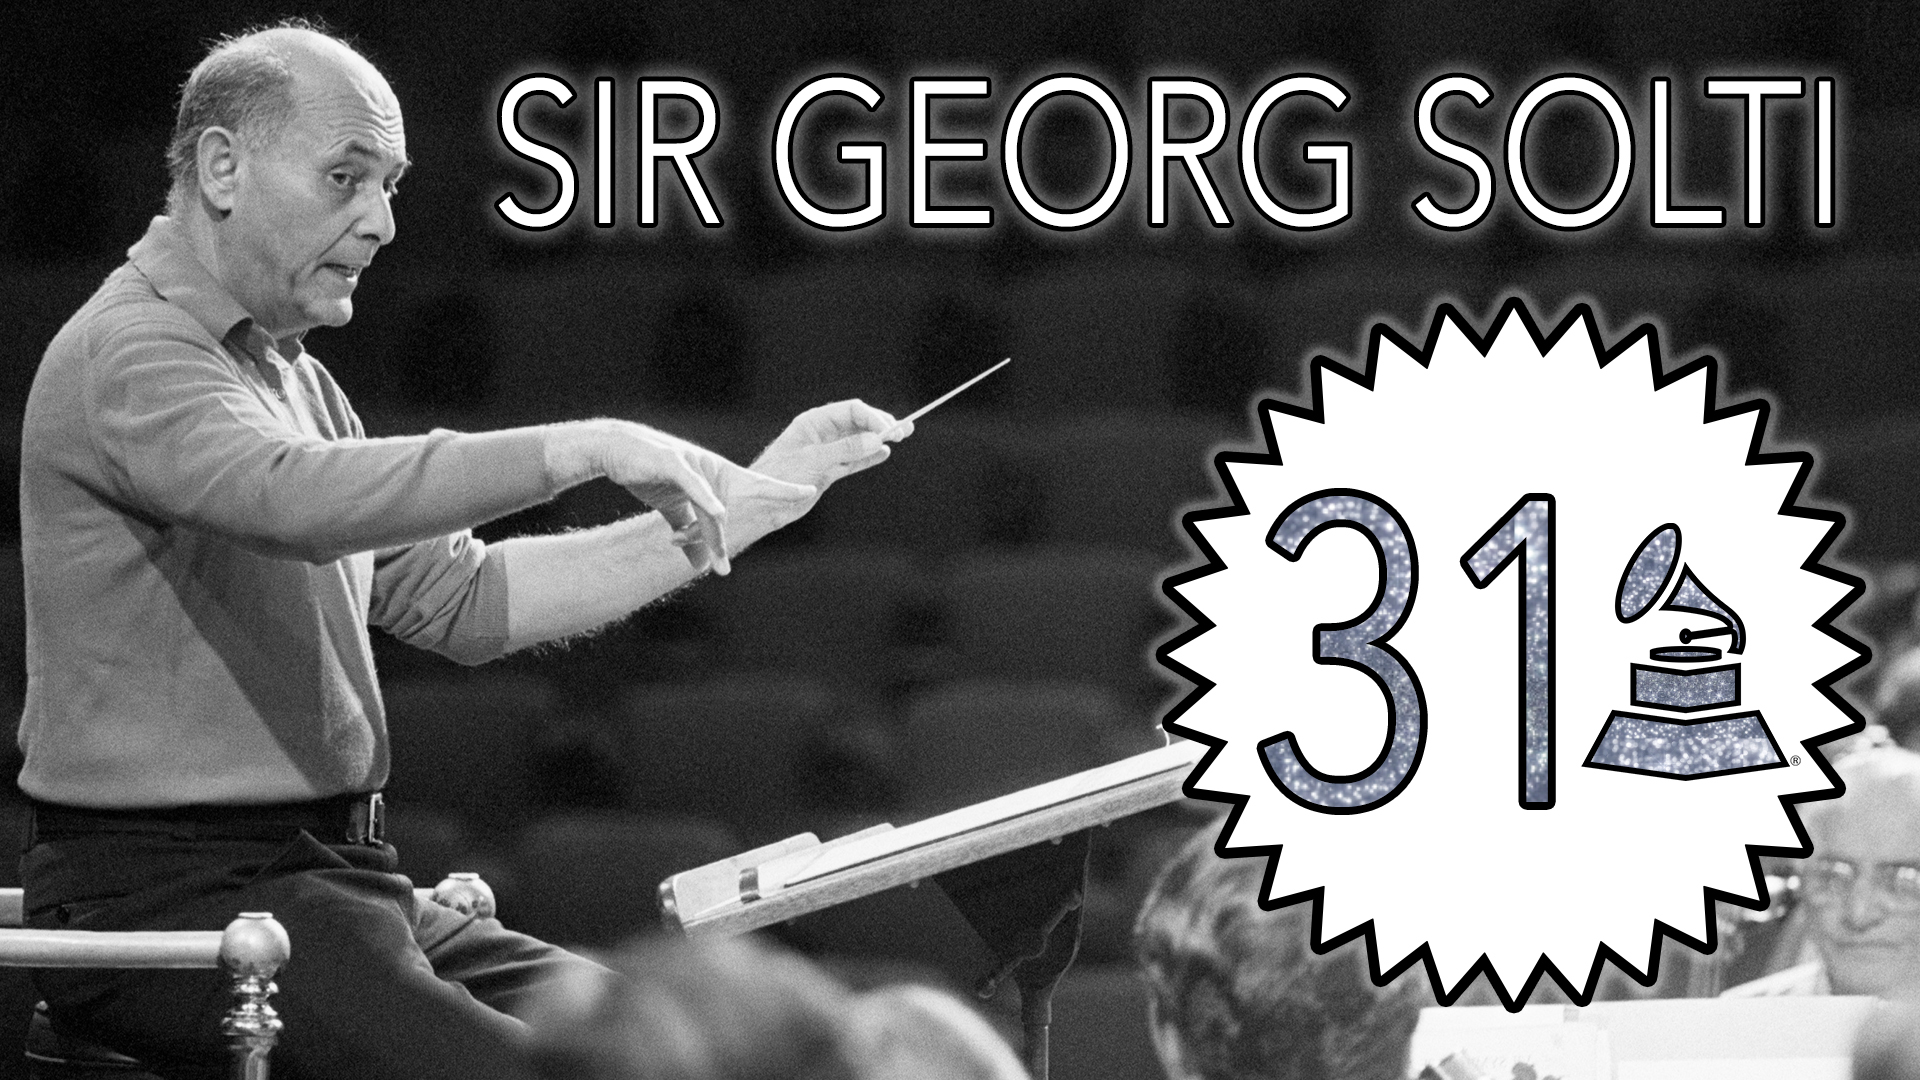 Sir Georg Solti with 31 GRAMMY Awards